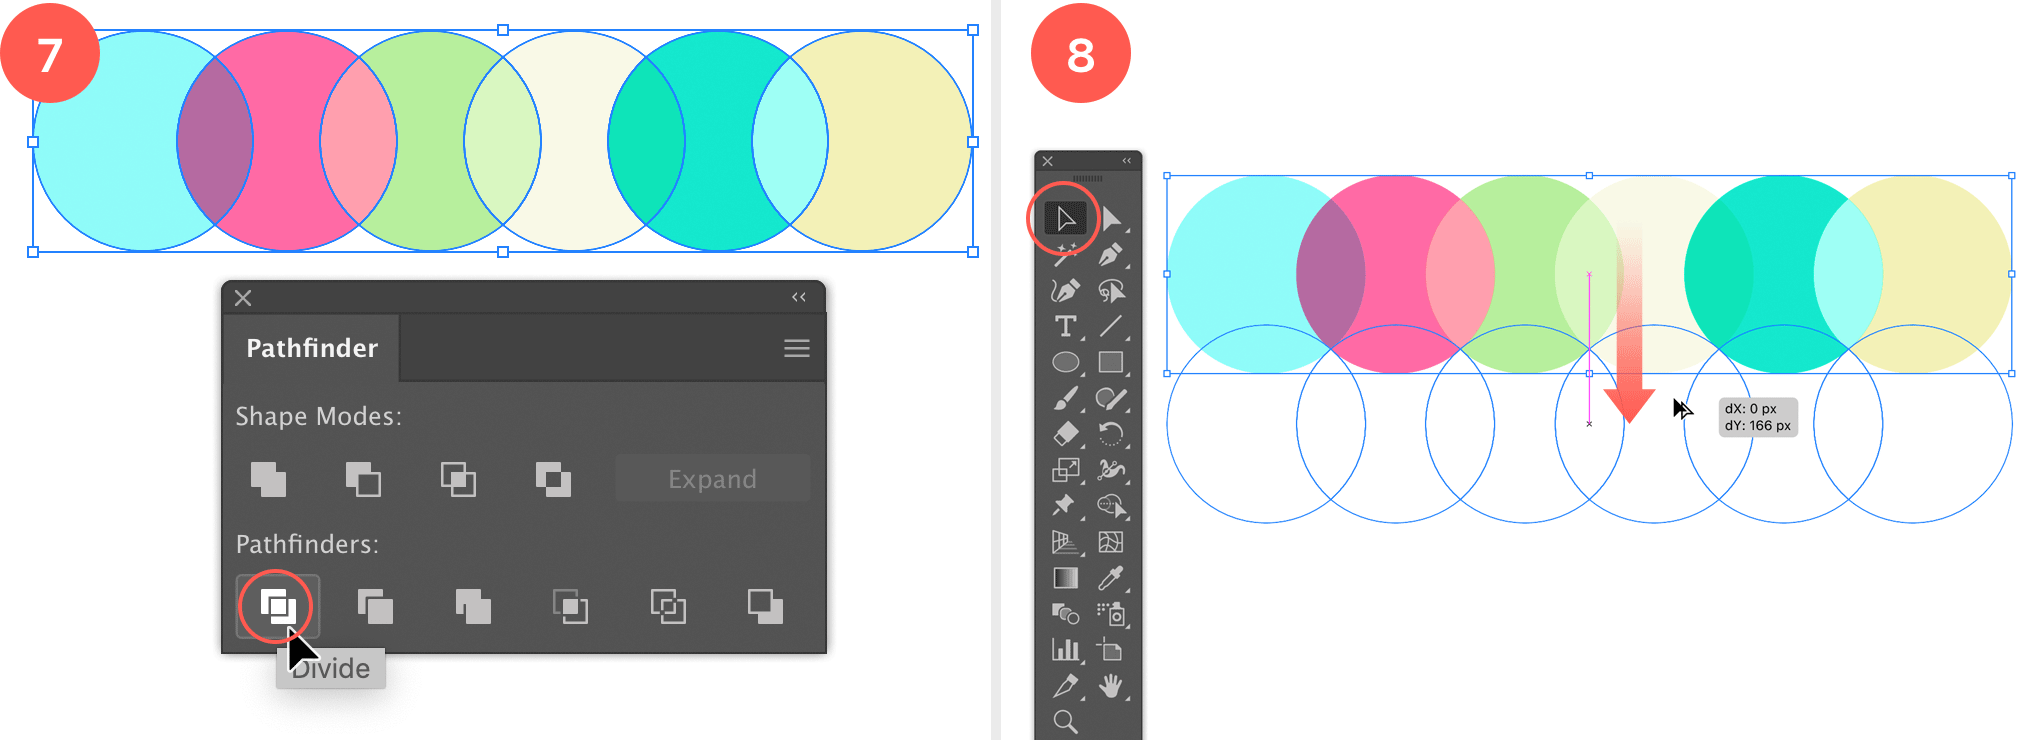 Divide the circles into separate objects and duplicate all the circles while moving them vertically down.